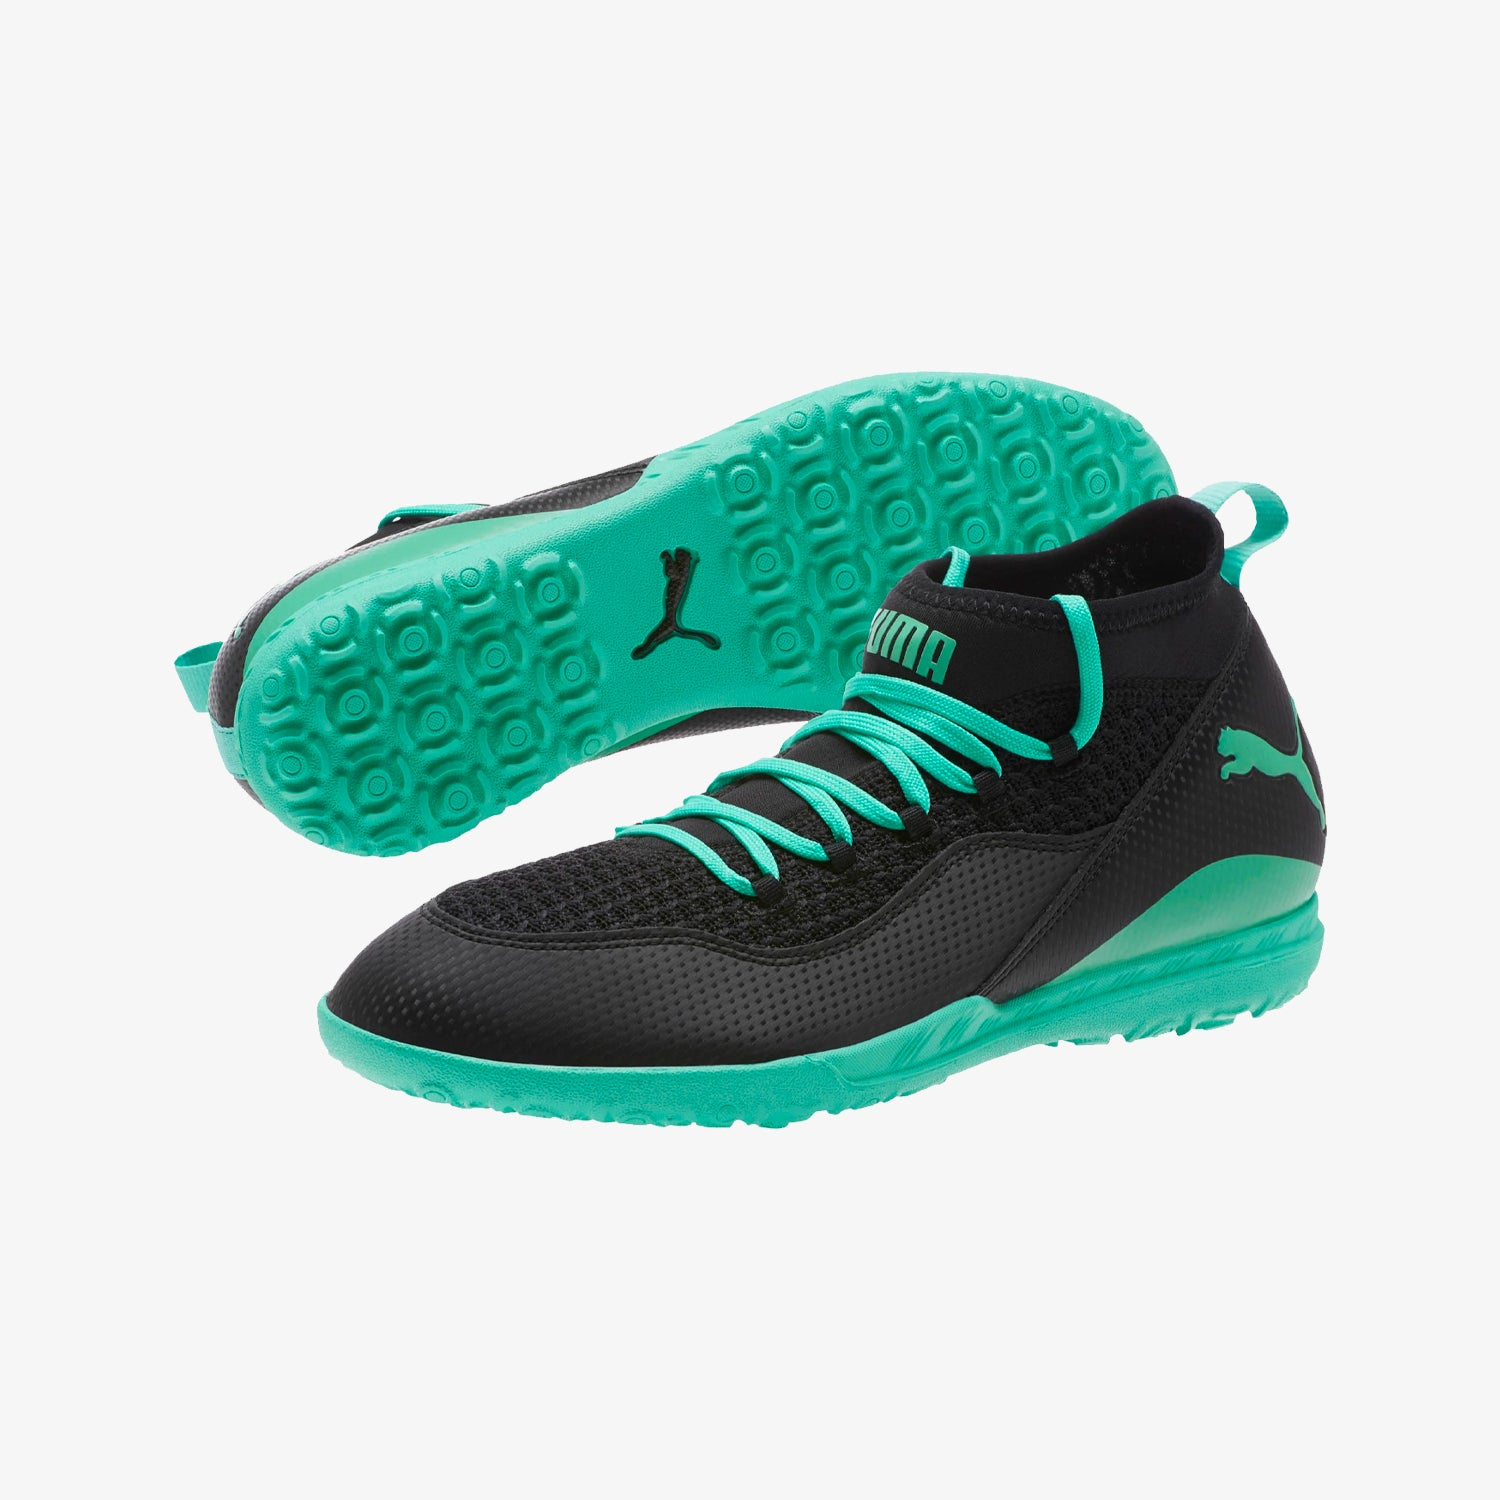 365 FF 3 ST Sneakers - Black/Green